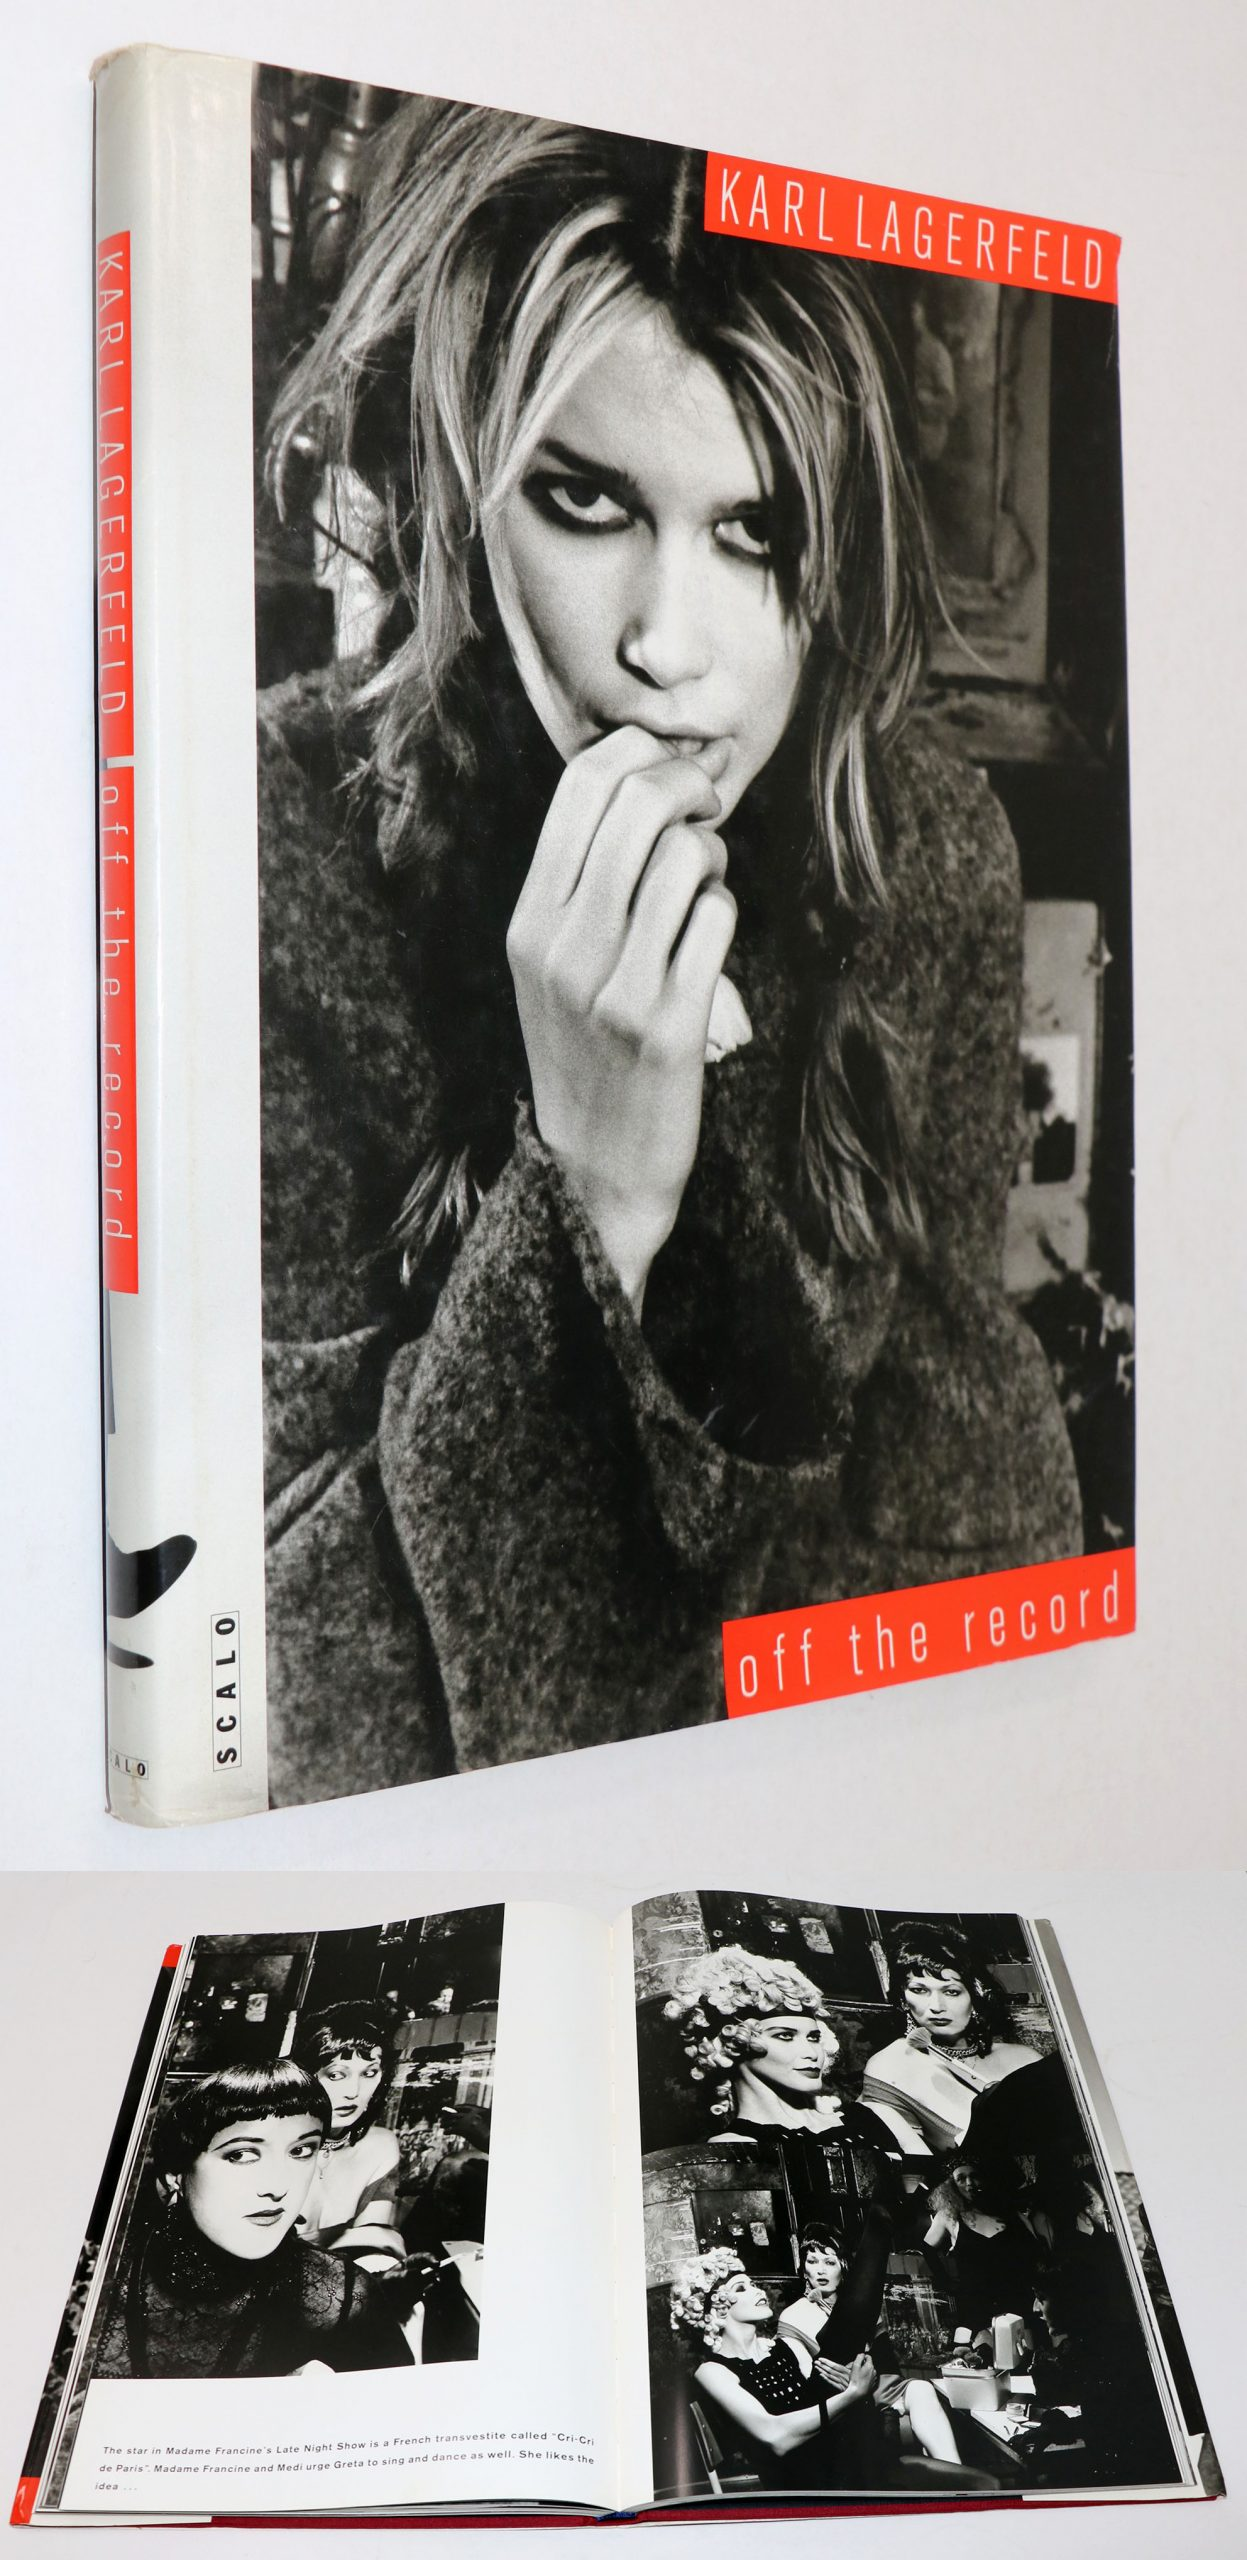 Karl Lagerfeld:Off the Record